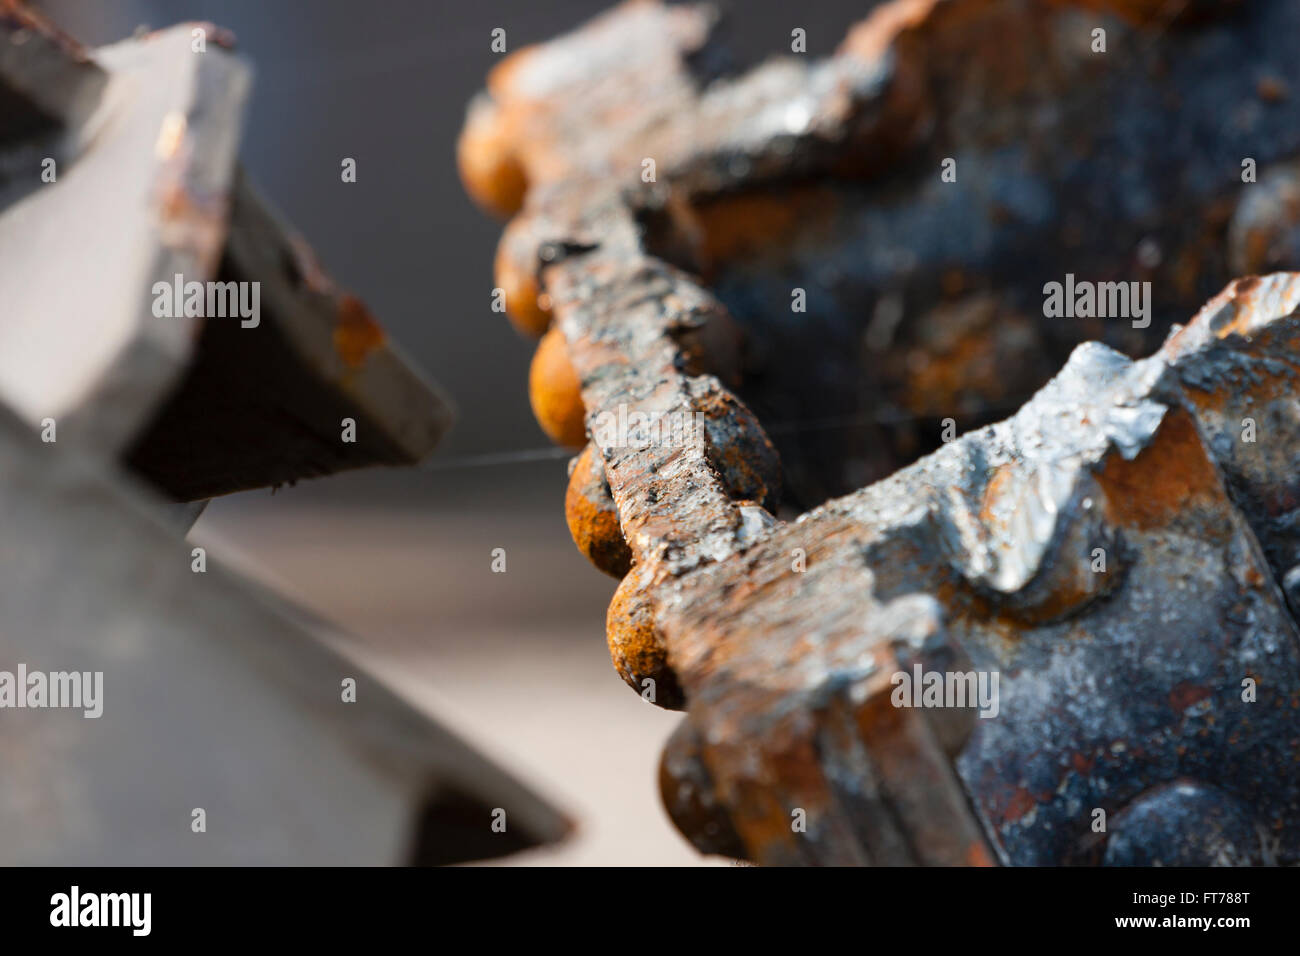 Detail shot of cut rusty steel beams from an old bridge. Stock Photo